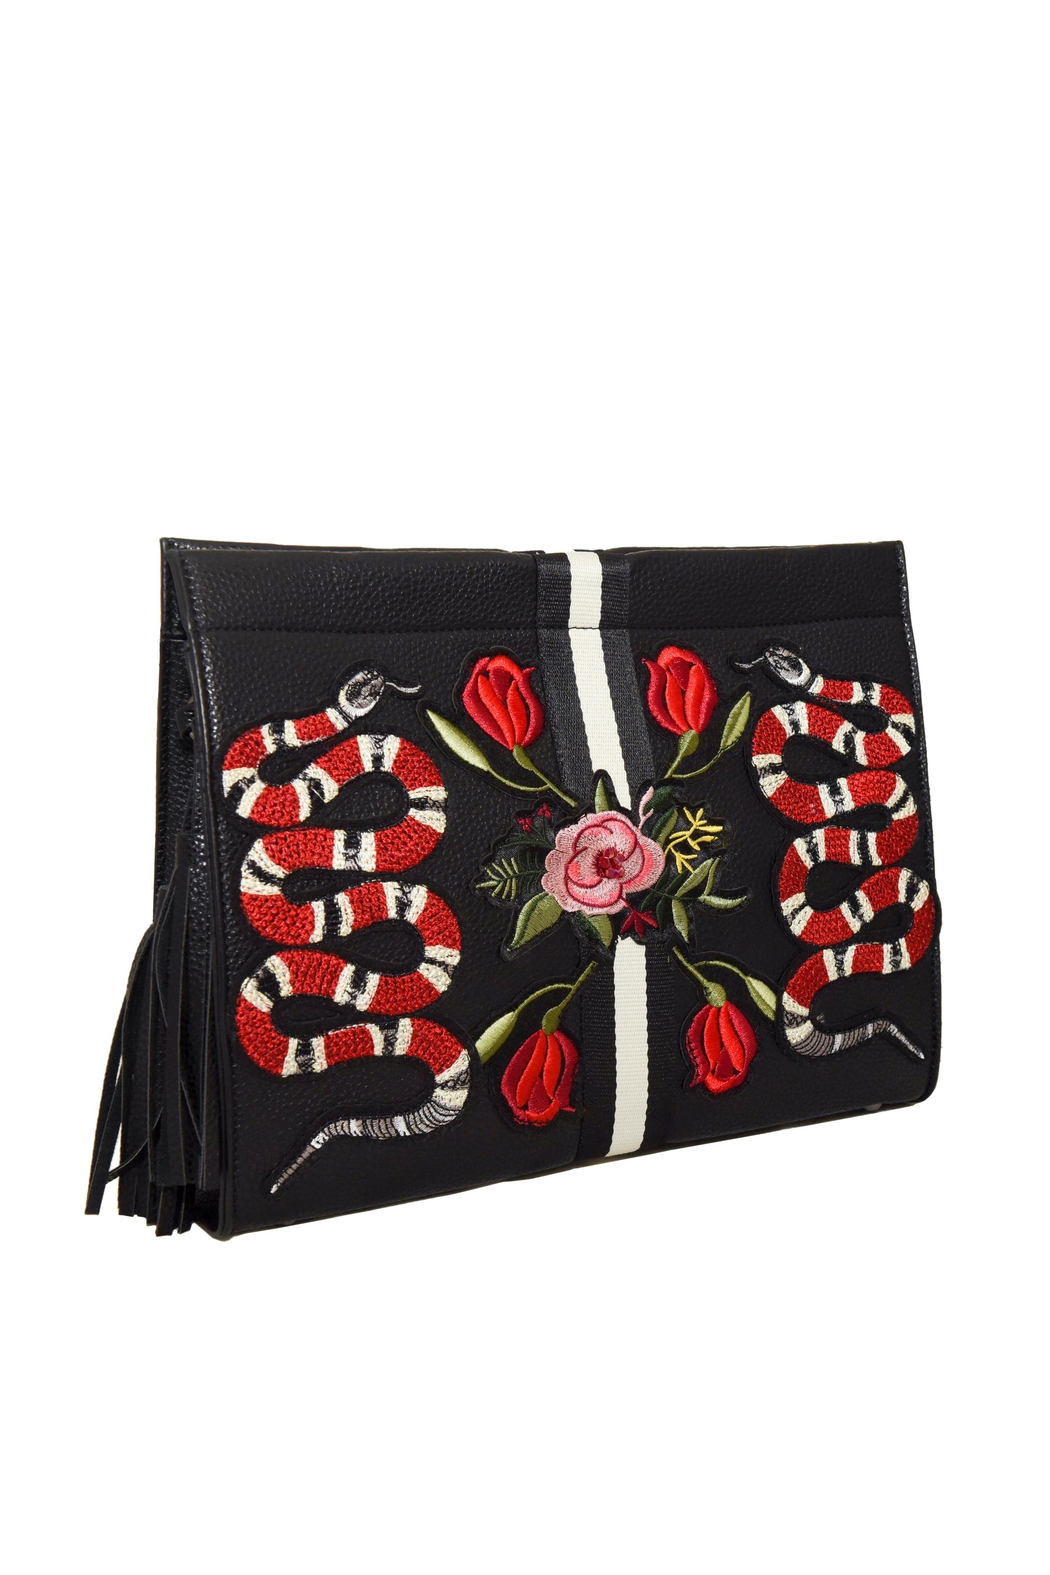 INZI Snakes N Roses Clutch - Side Cropped Image